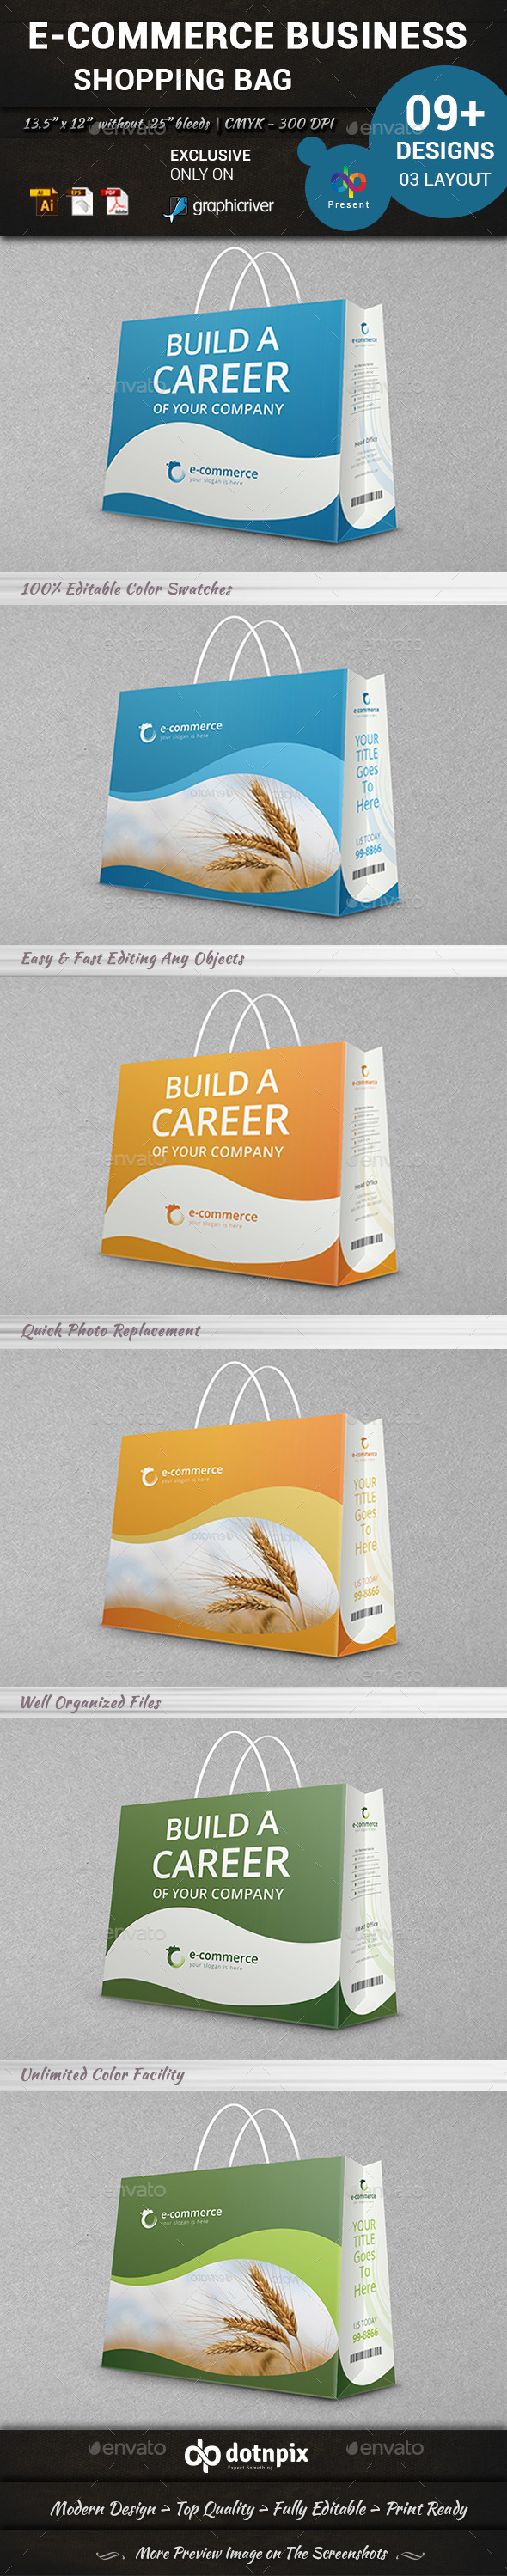 E-Commerce Business Shopping Bag - Packaging Print Templates